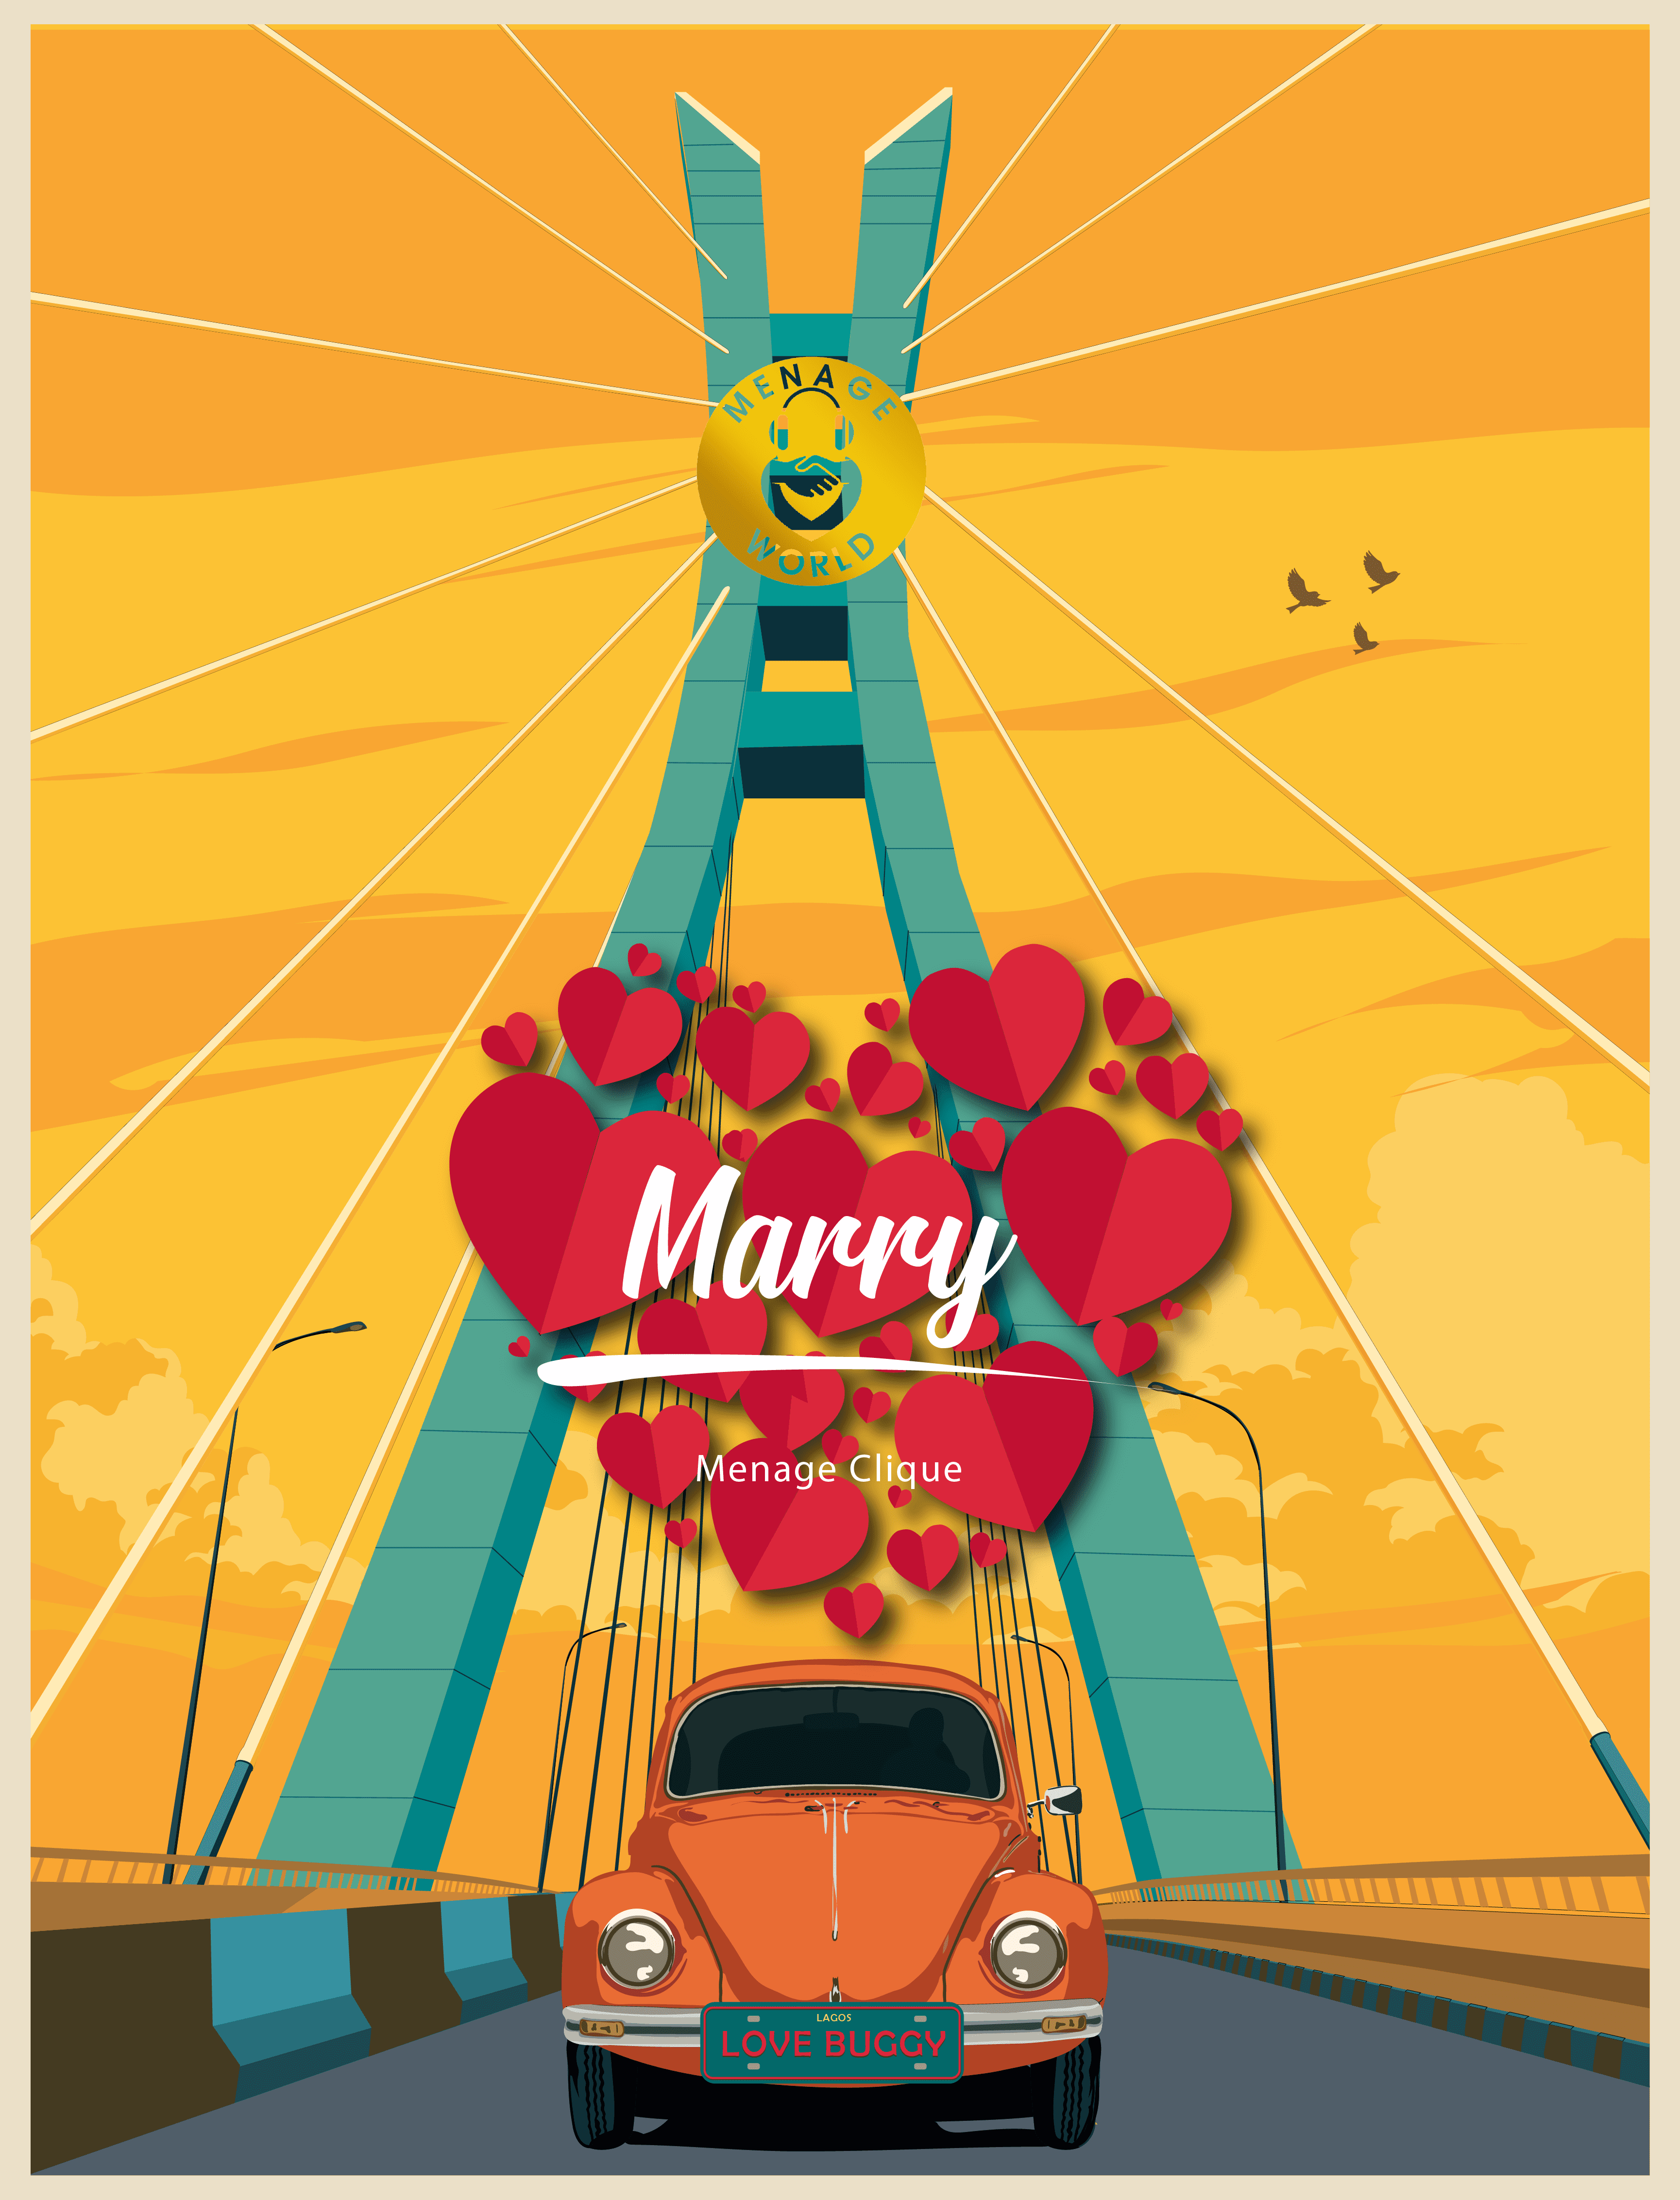 MenageClique – Marry